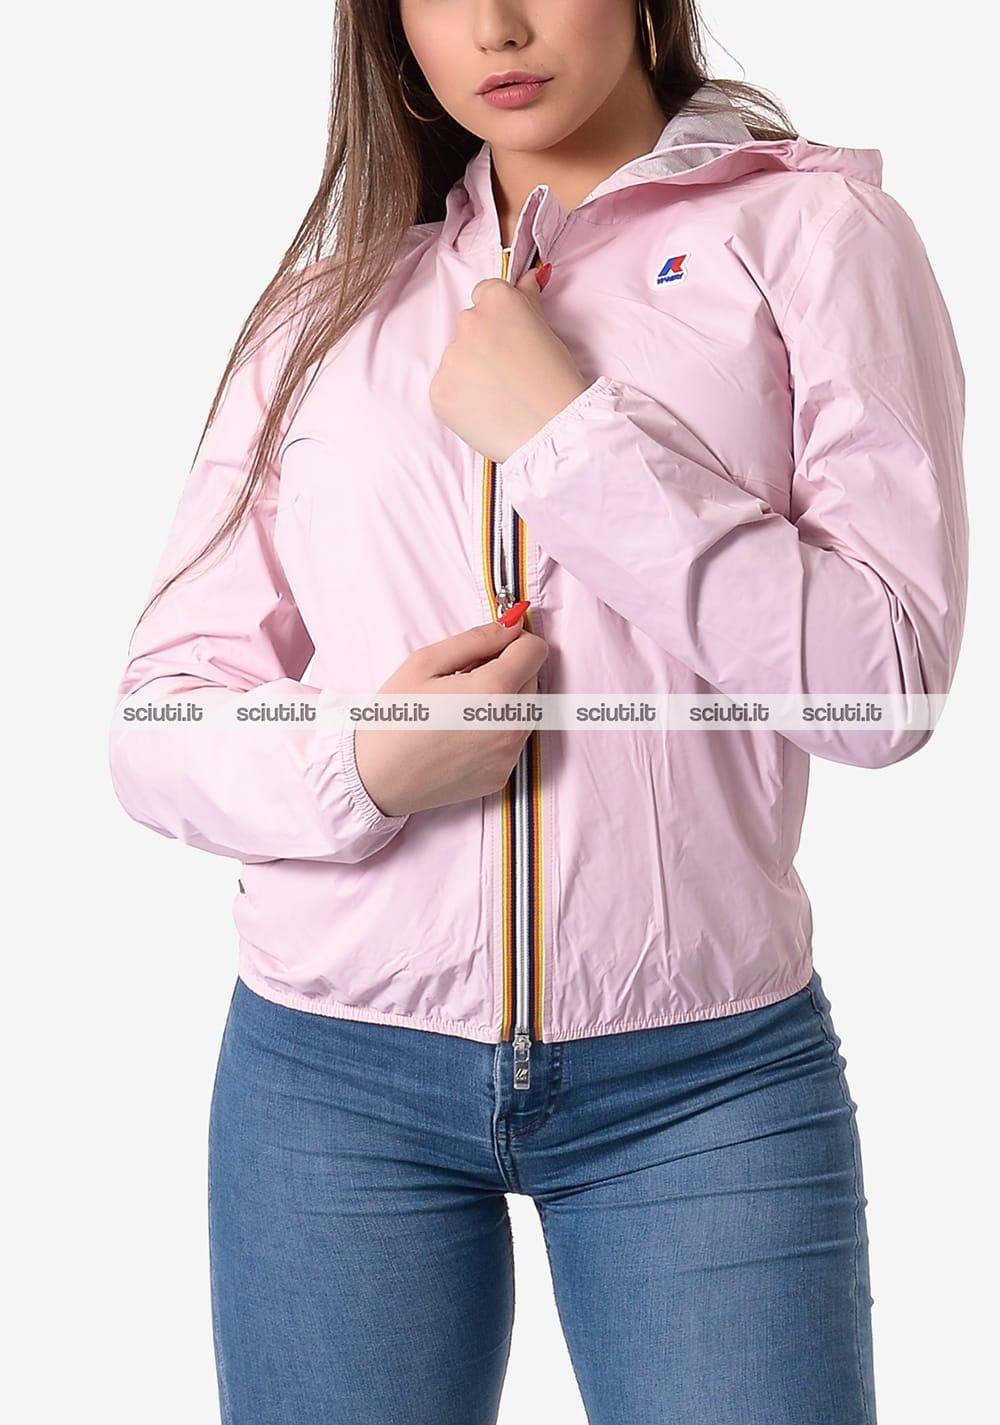 Giubbotto Kway donna Lil plus dot rosa